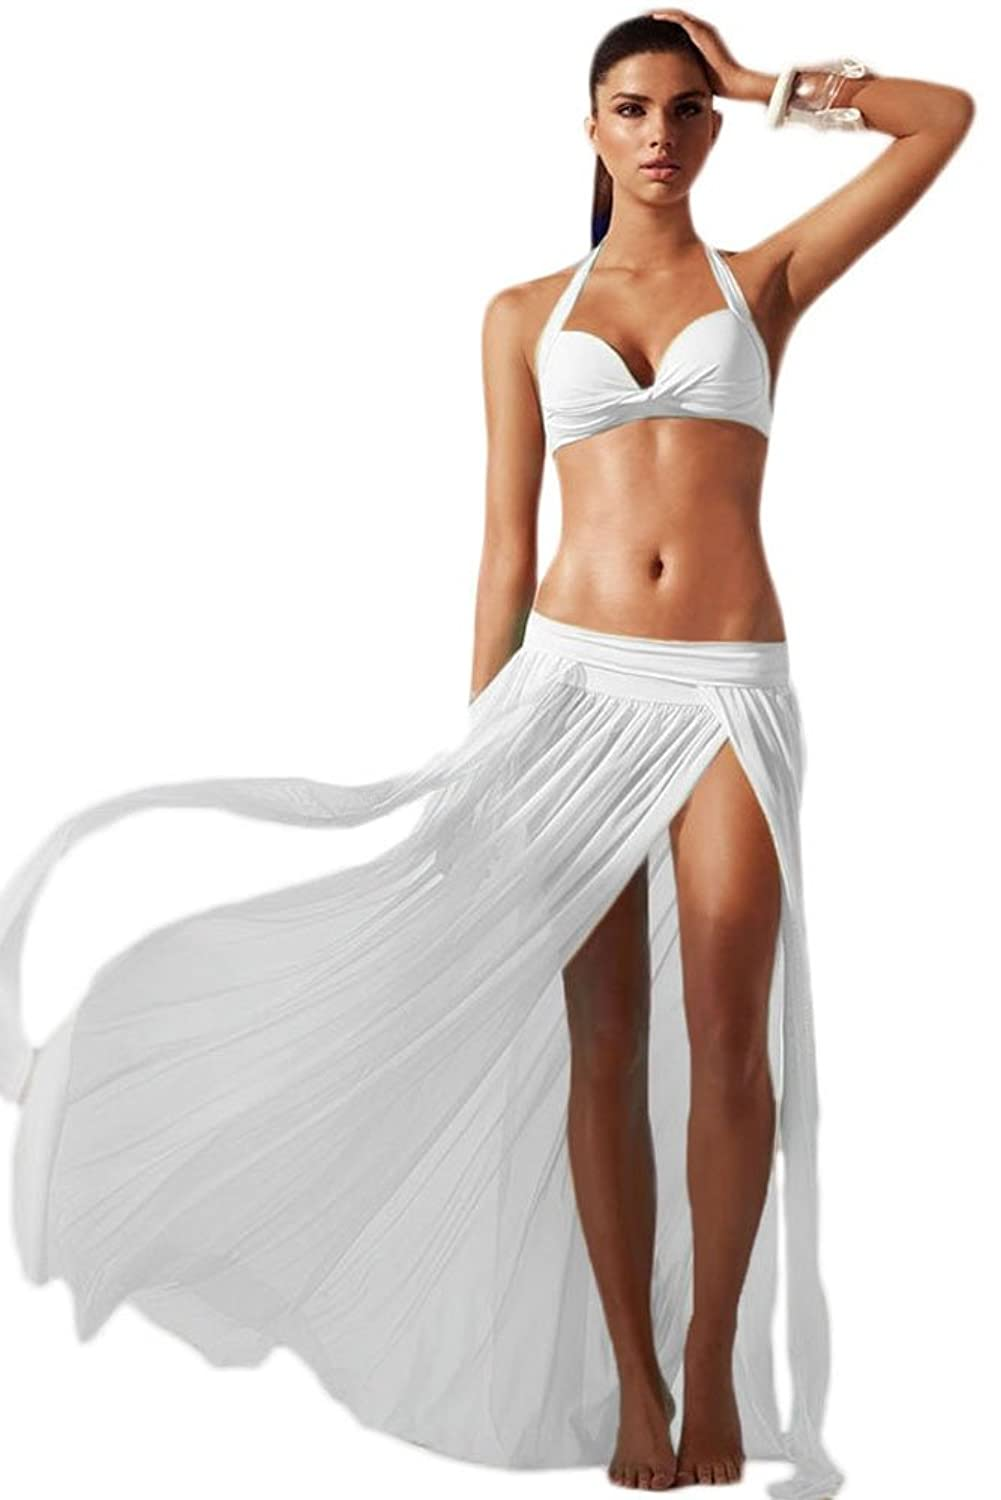 NICE BUY Damen Mesh-Maxi-Strandkleid Bikini Cover UP Sommerkleid